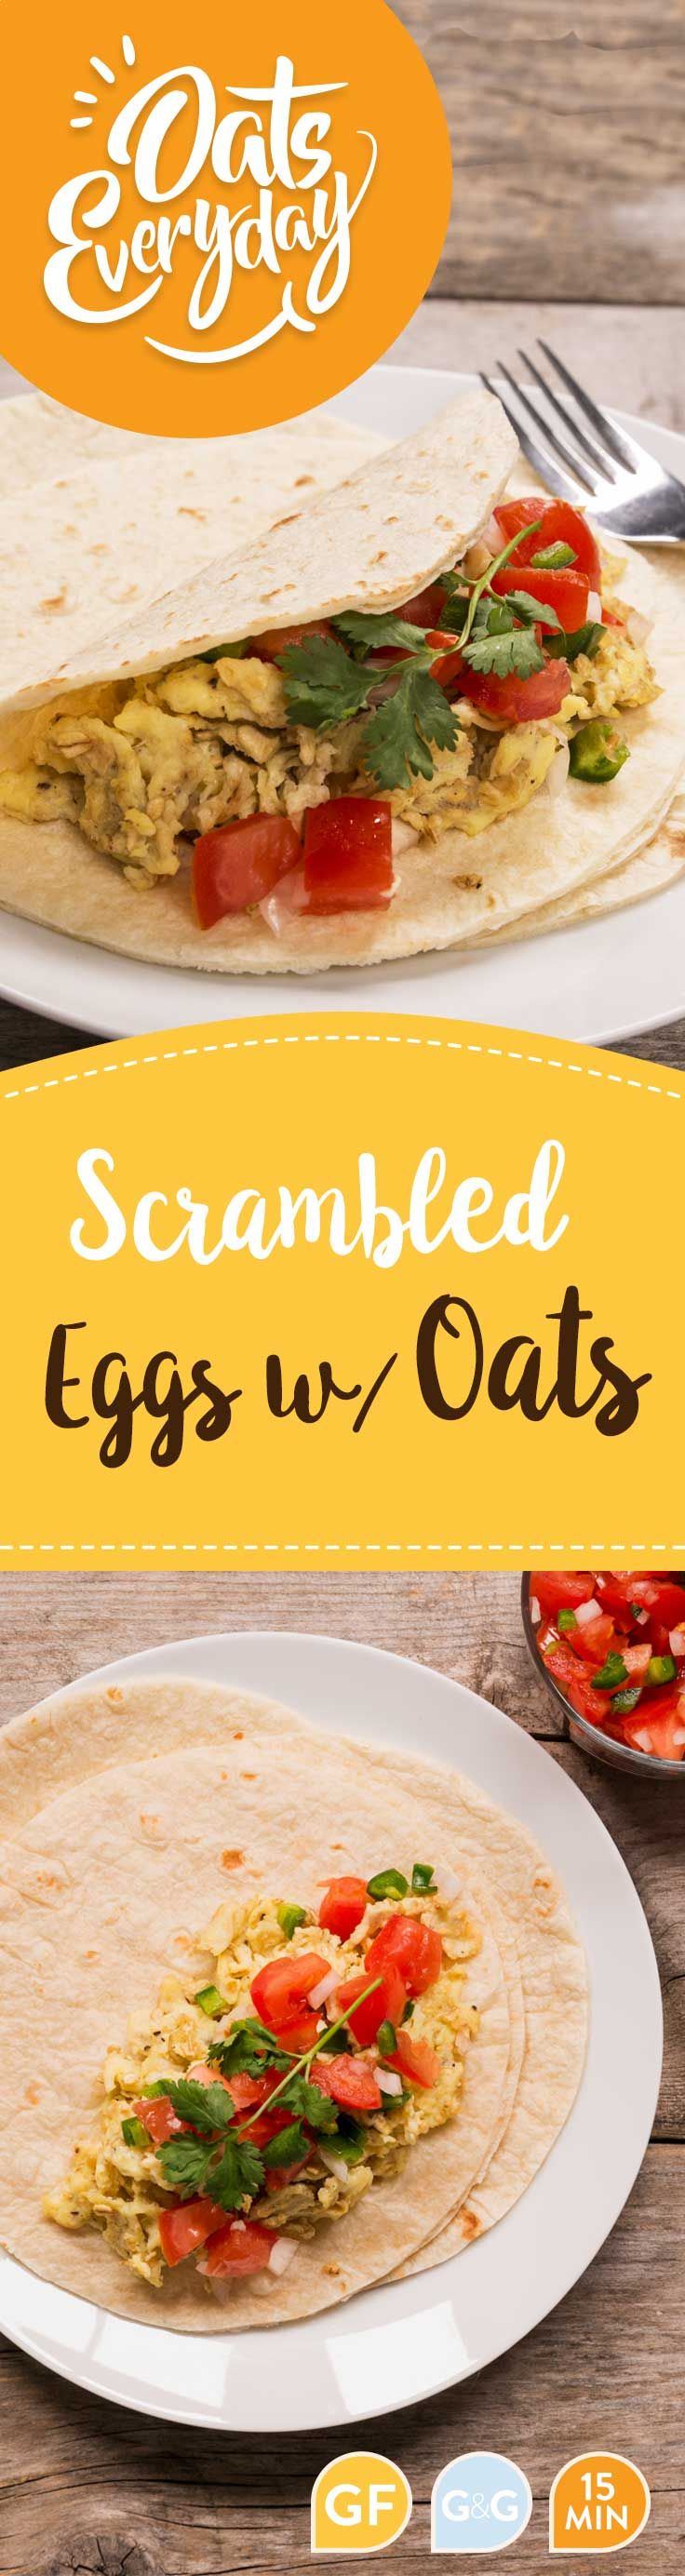 Add oats to scrambled eggs for an easy and satisfying breakfast.